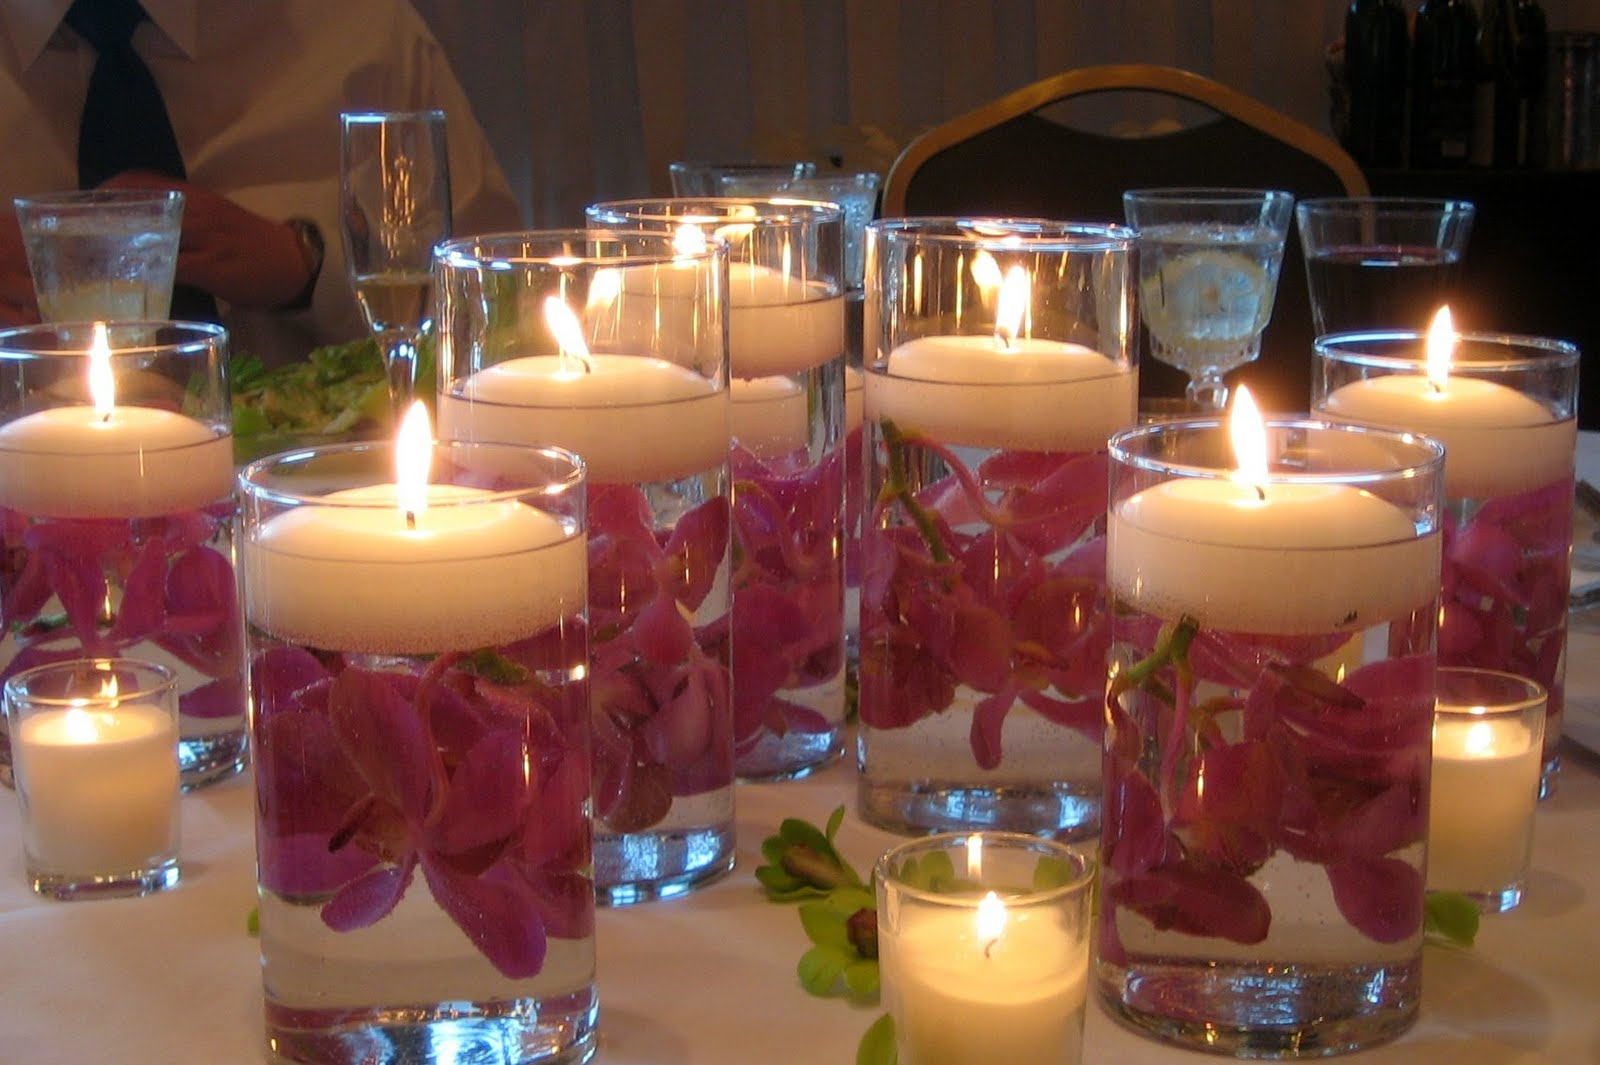 http://2.bp.blogspot.com/_HfYVGEp5G6c/S-SMtYNGymI/AAAAAAAACAc/HzqLizBzsvM/s1600/Floating_wedding_candles.jpg